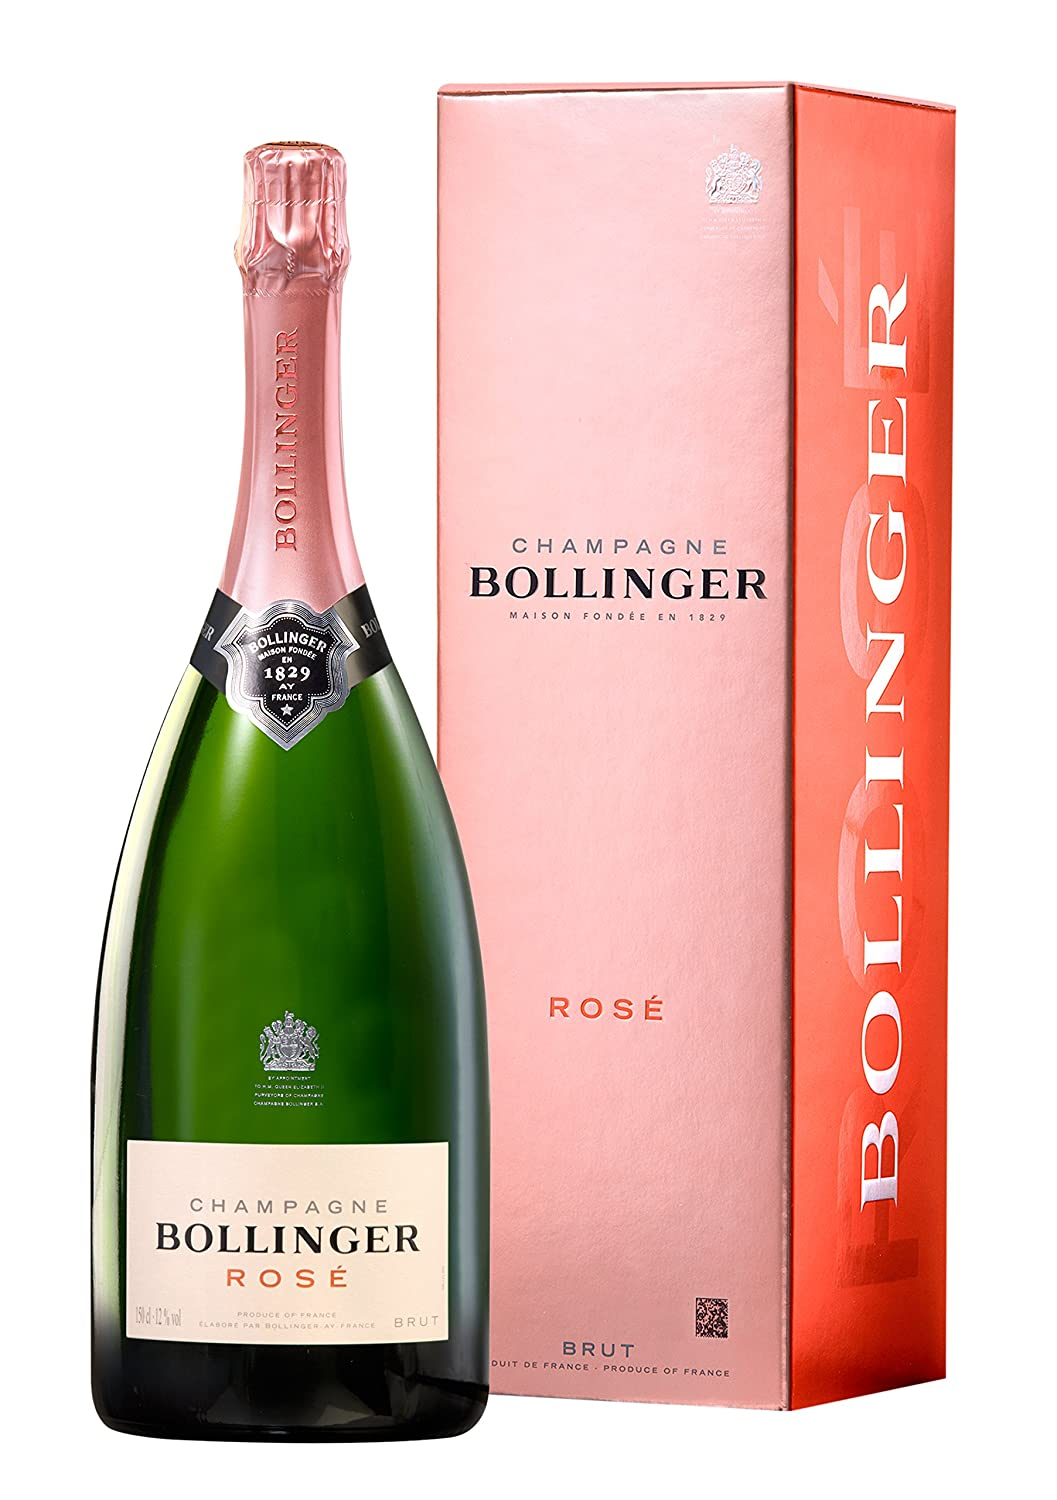 Baby champagne: description, composition, manufacturers and reviews 46